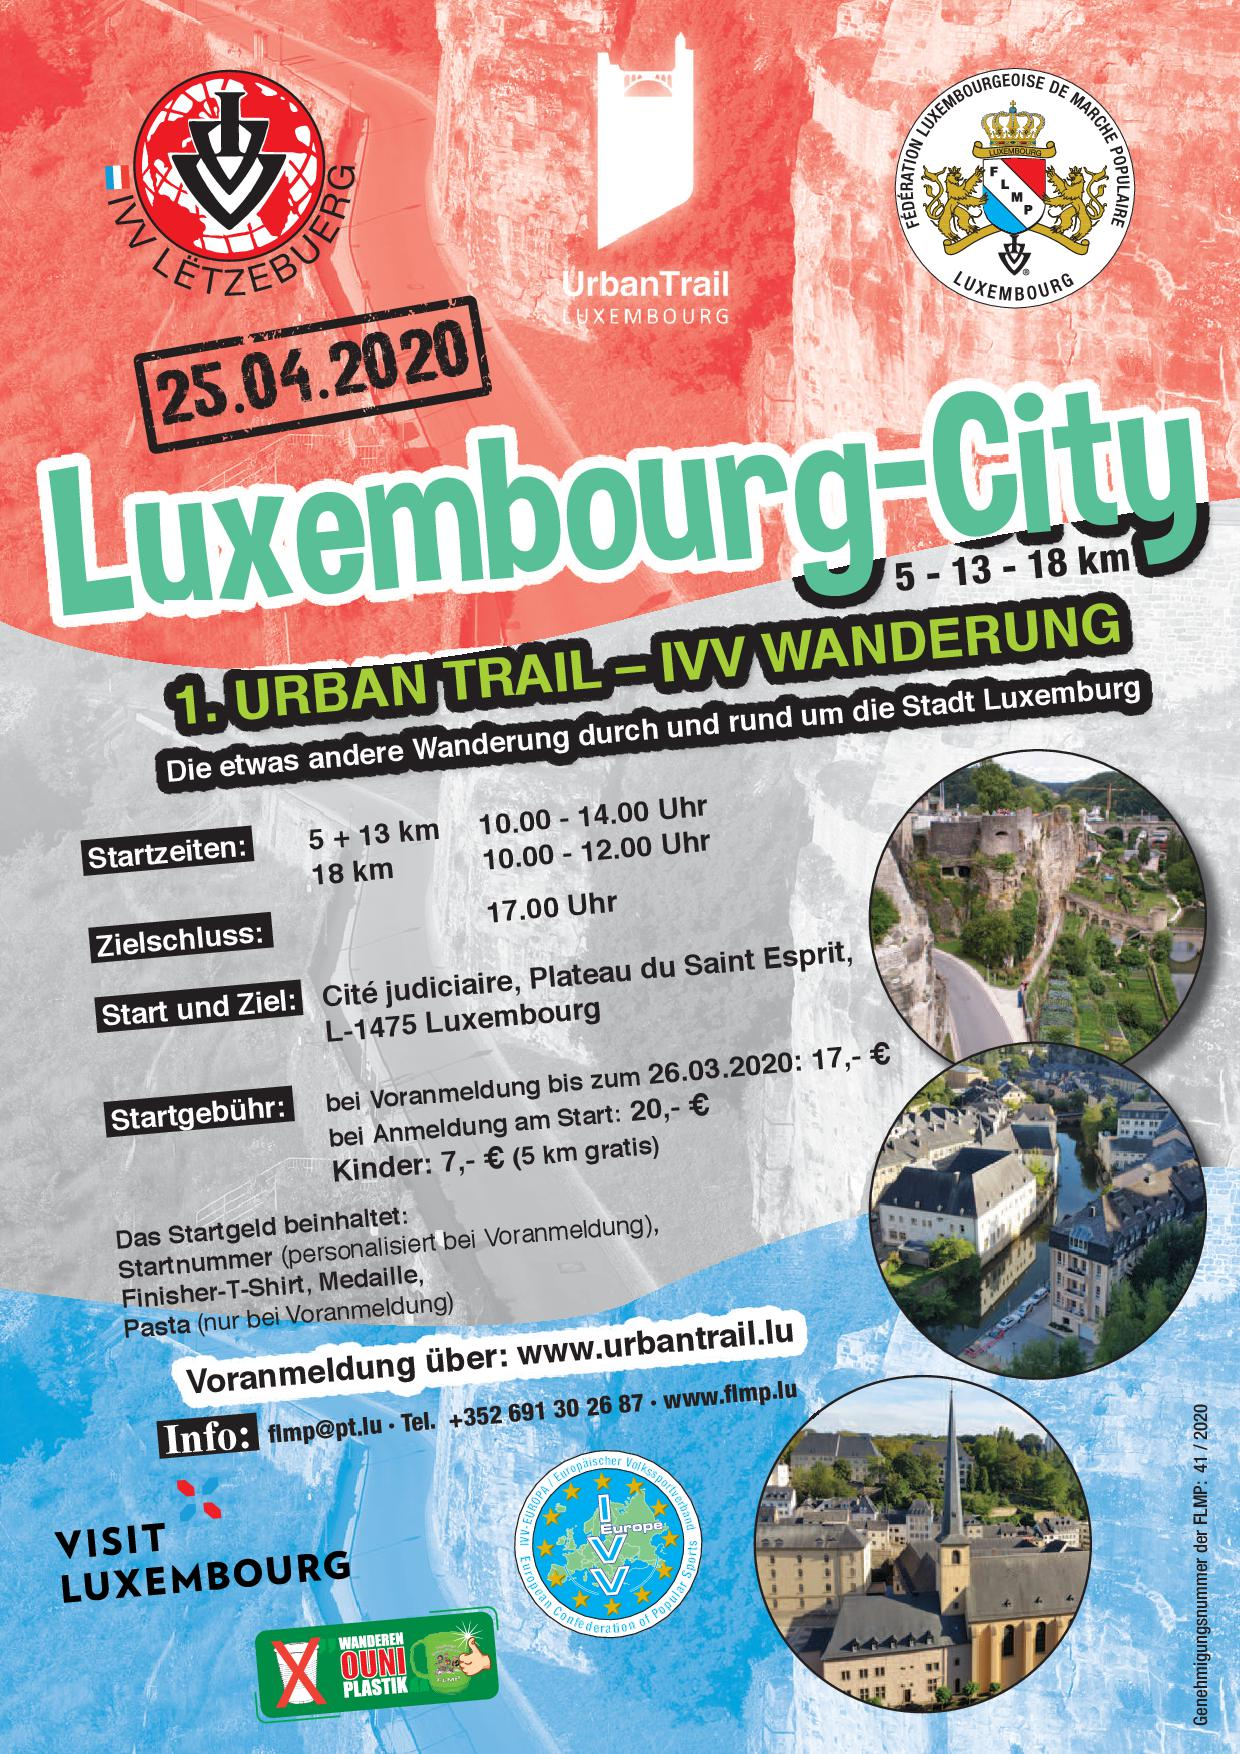 ANNULATION/ABSAGE LUXEMBOURG FLMP IVV URBAN-TRAIL-WANDERUNG